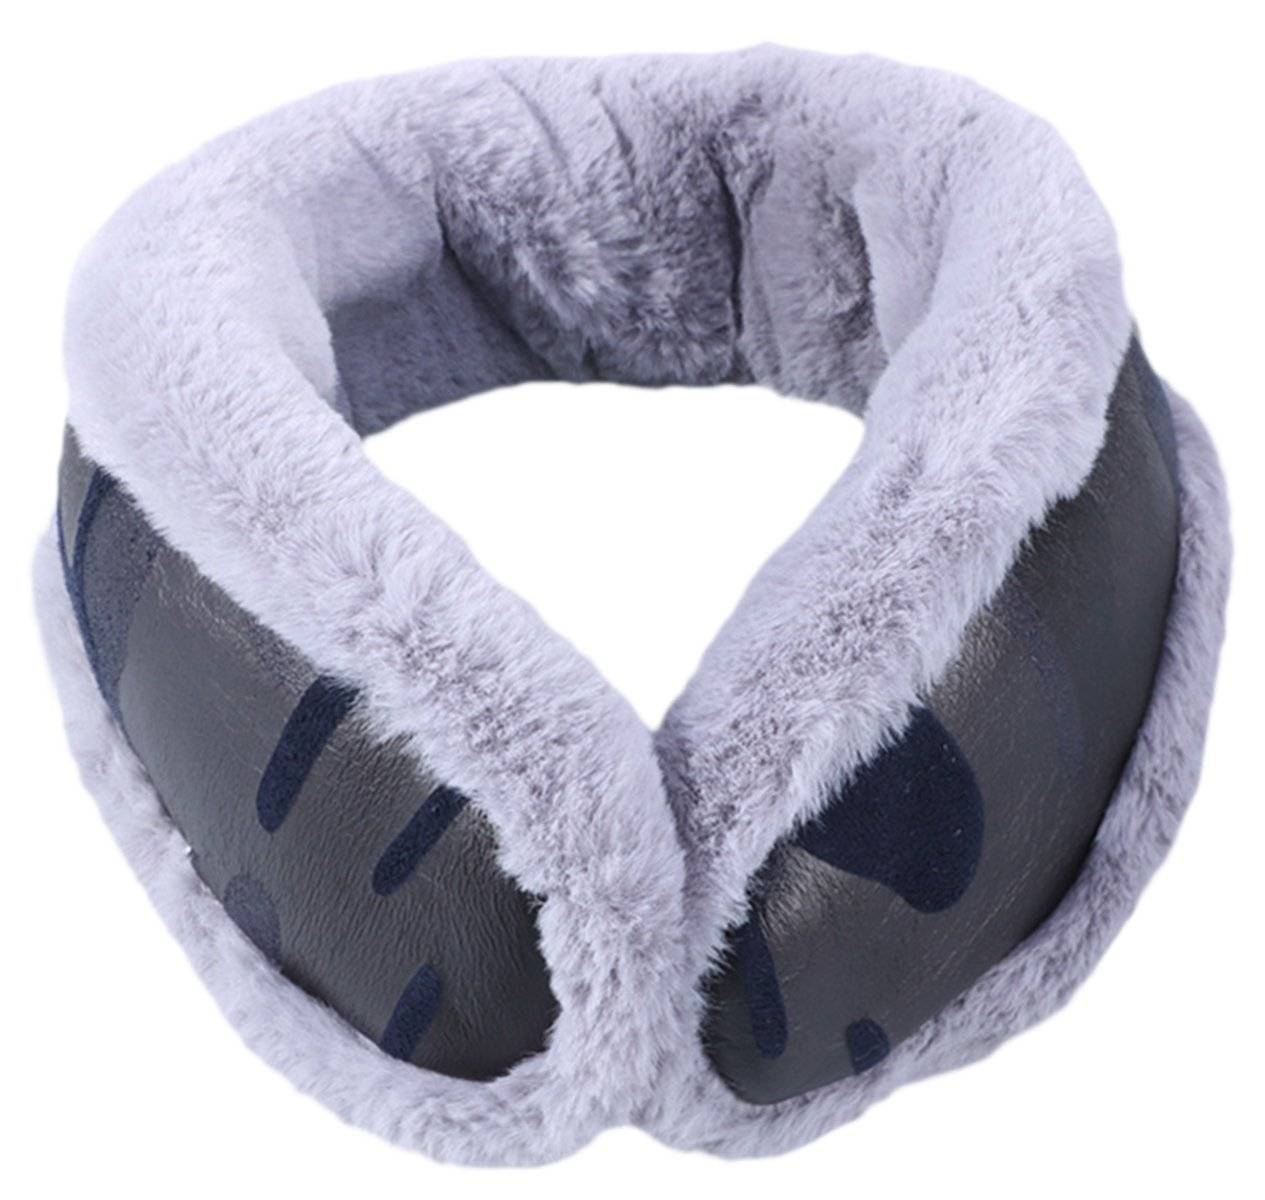 Knolee NEW Unisex Multi-function Earmuffs Earflap Foldable Outdoor Ear Muffs,Camouflage Gray One Size